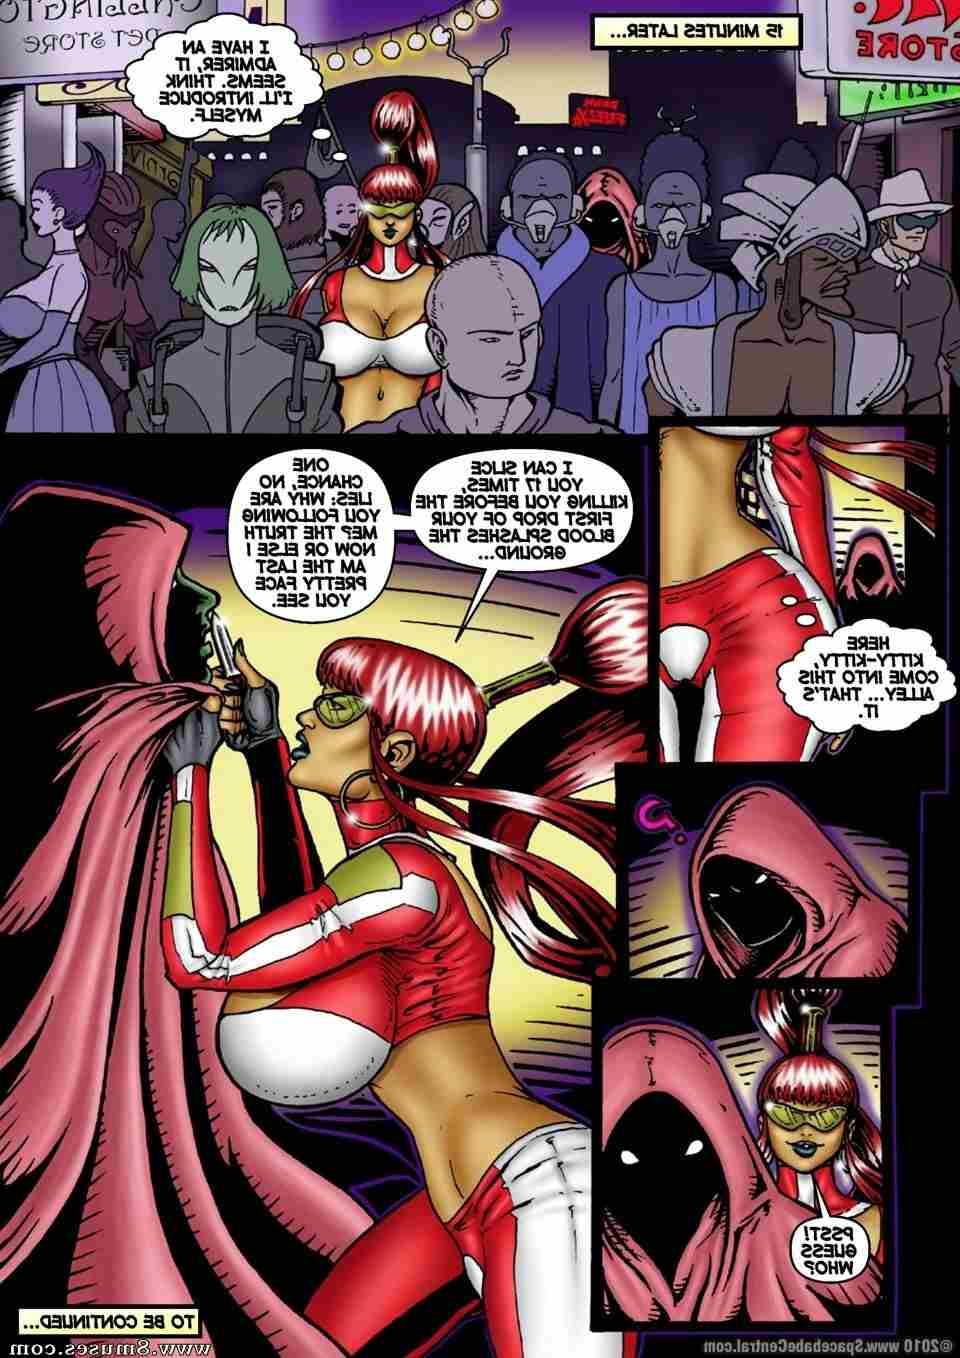 Central-Comics/Space-Babe-Central/Alien-Huntress Alien_Huntress__8muses_-_Sex_and_Porn_Comics_100.jpg